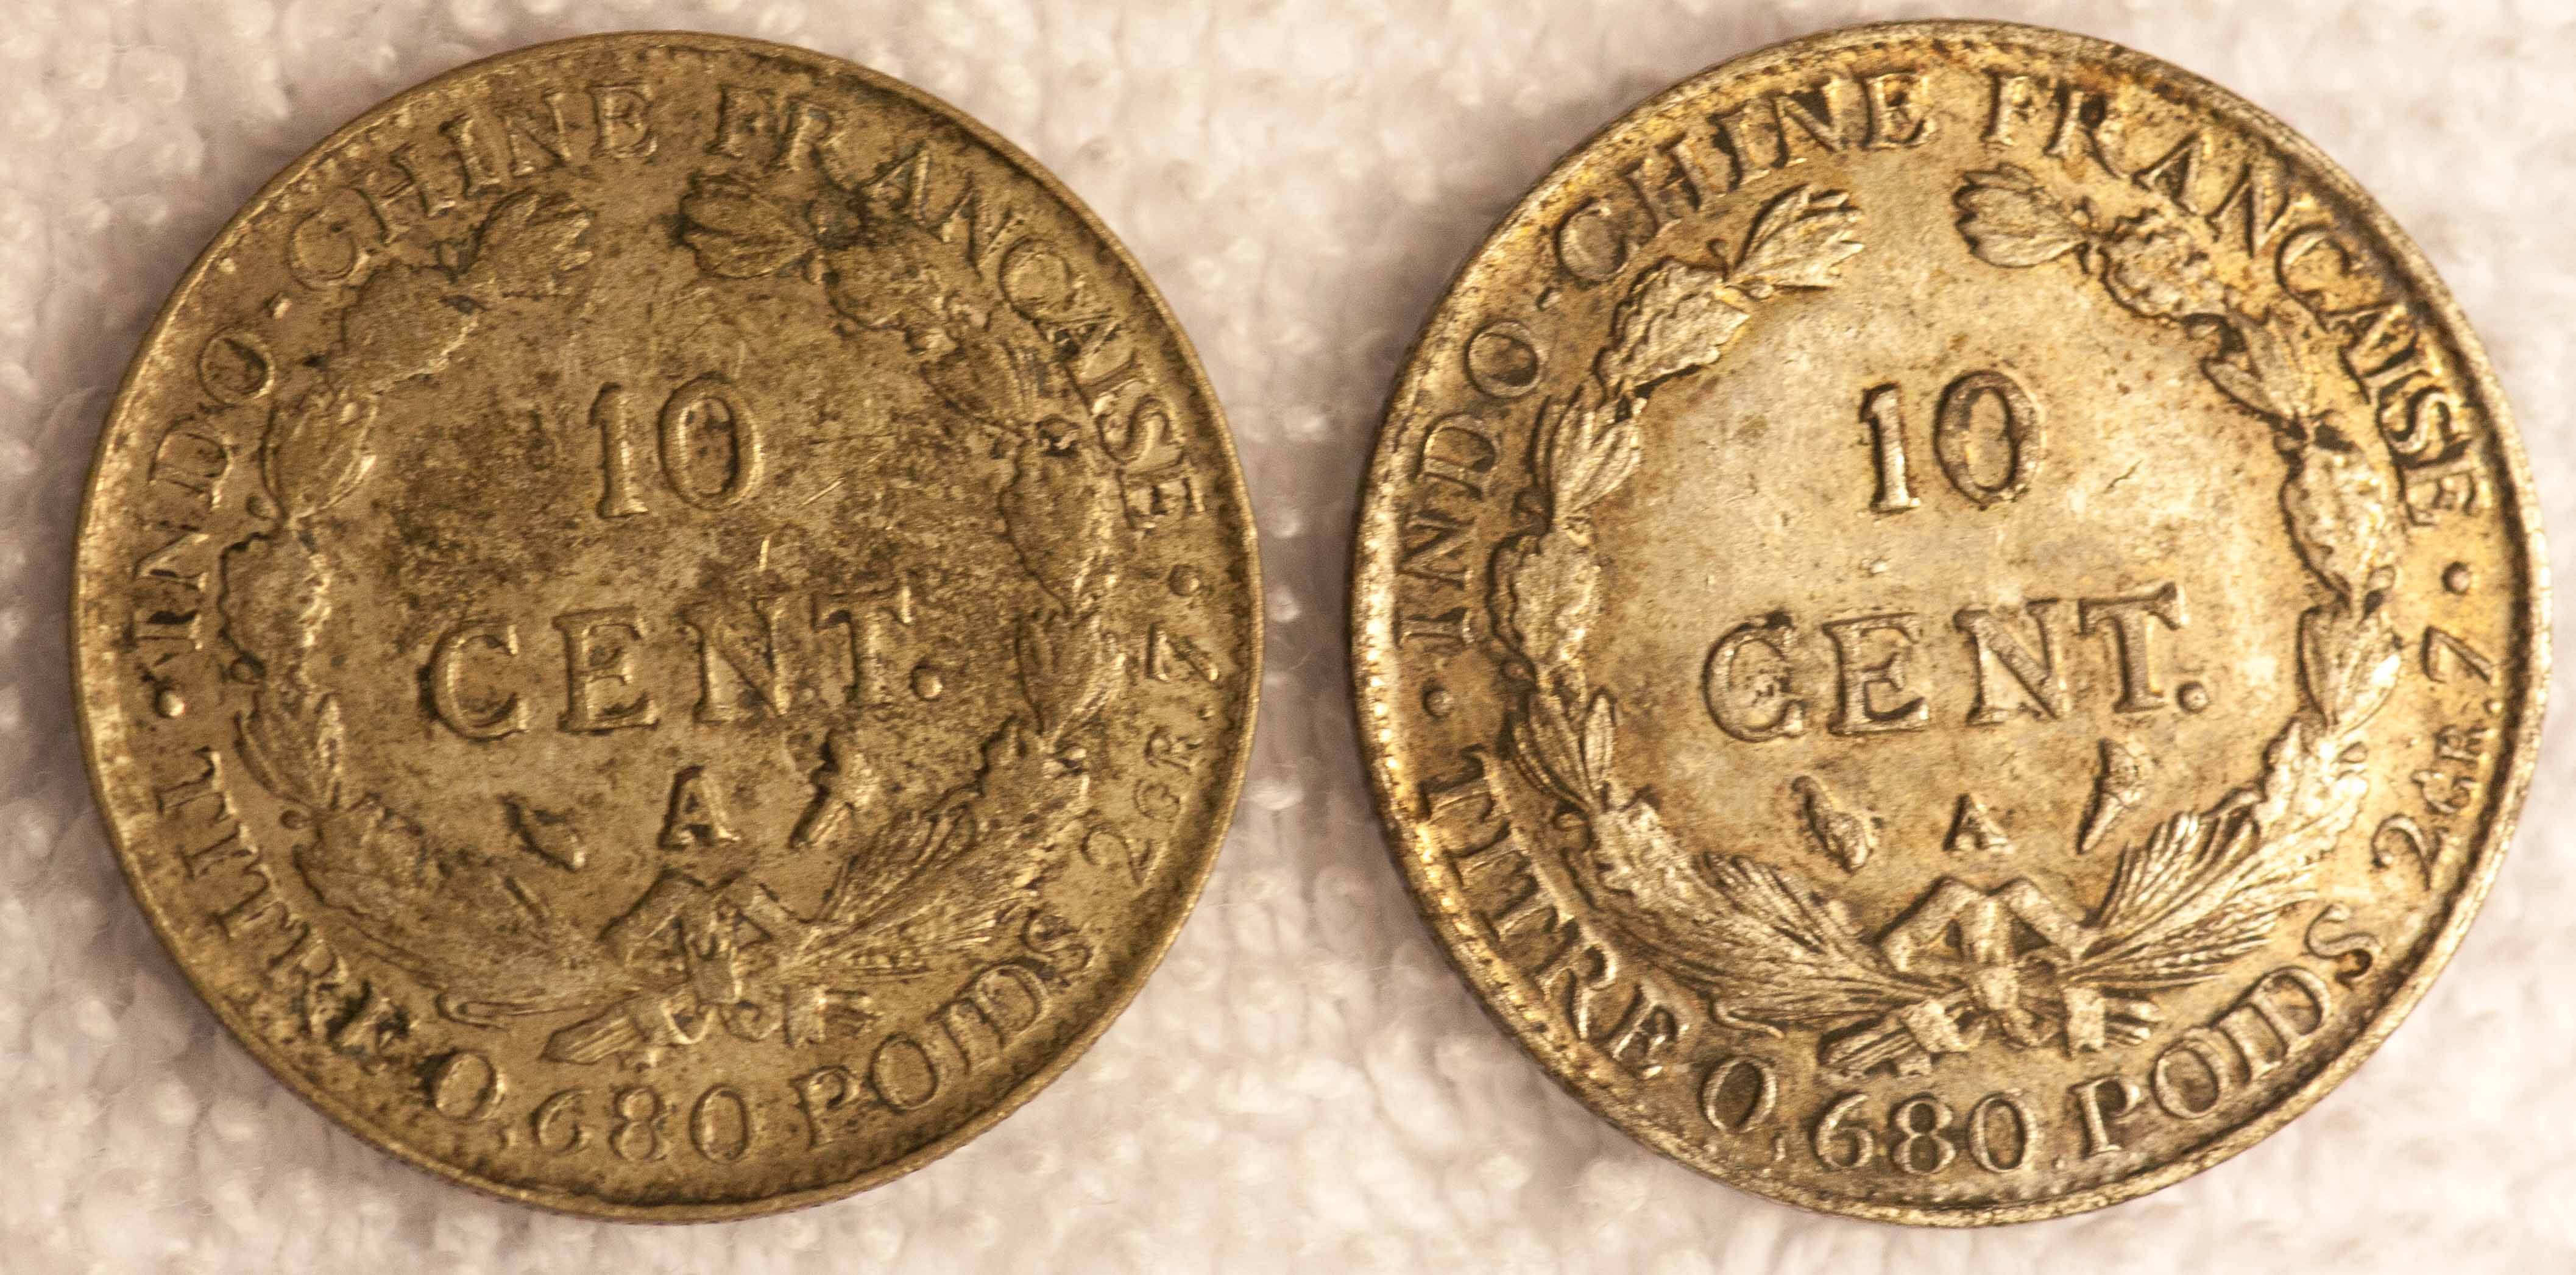 Changed dates on French Indochina coins - what is it? – Numista